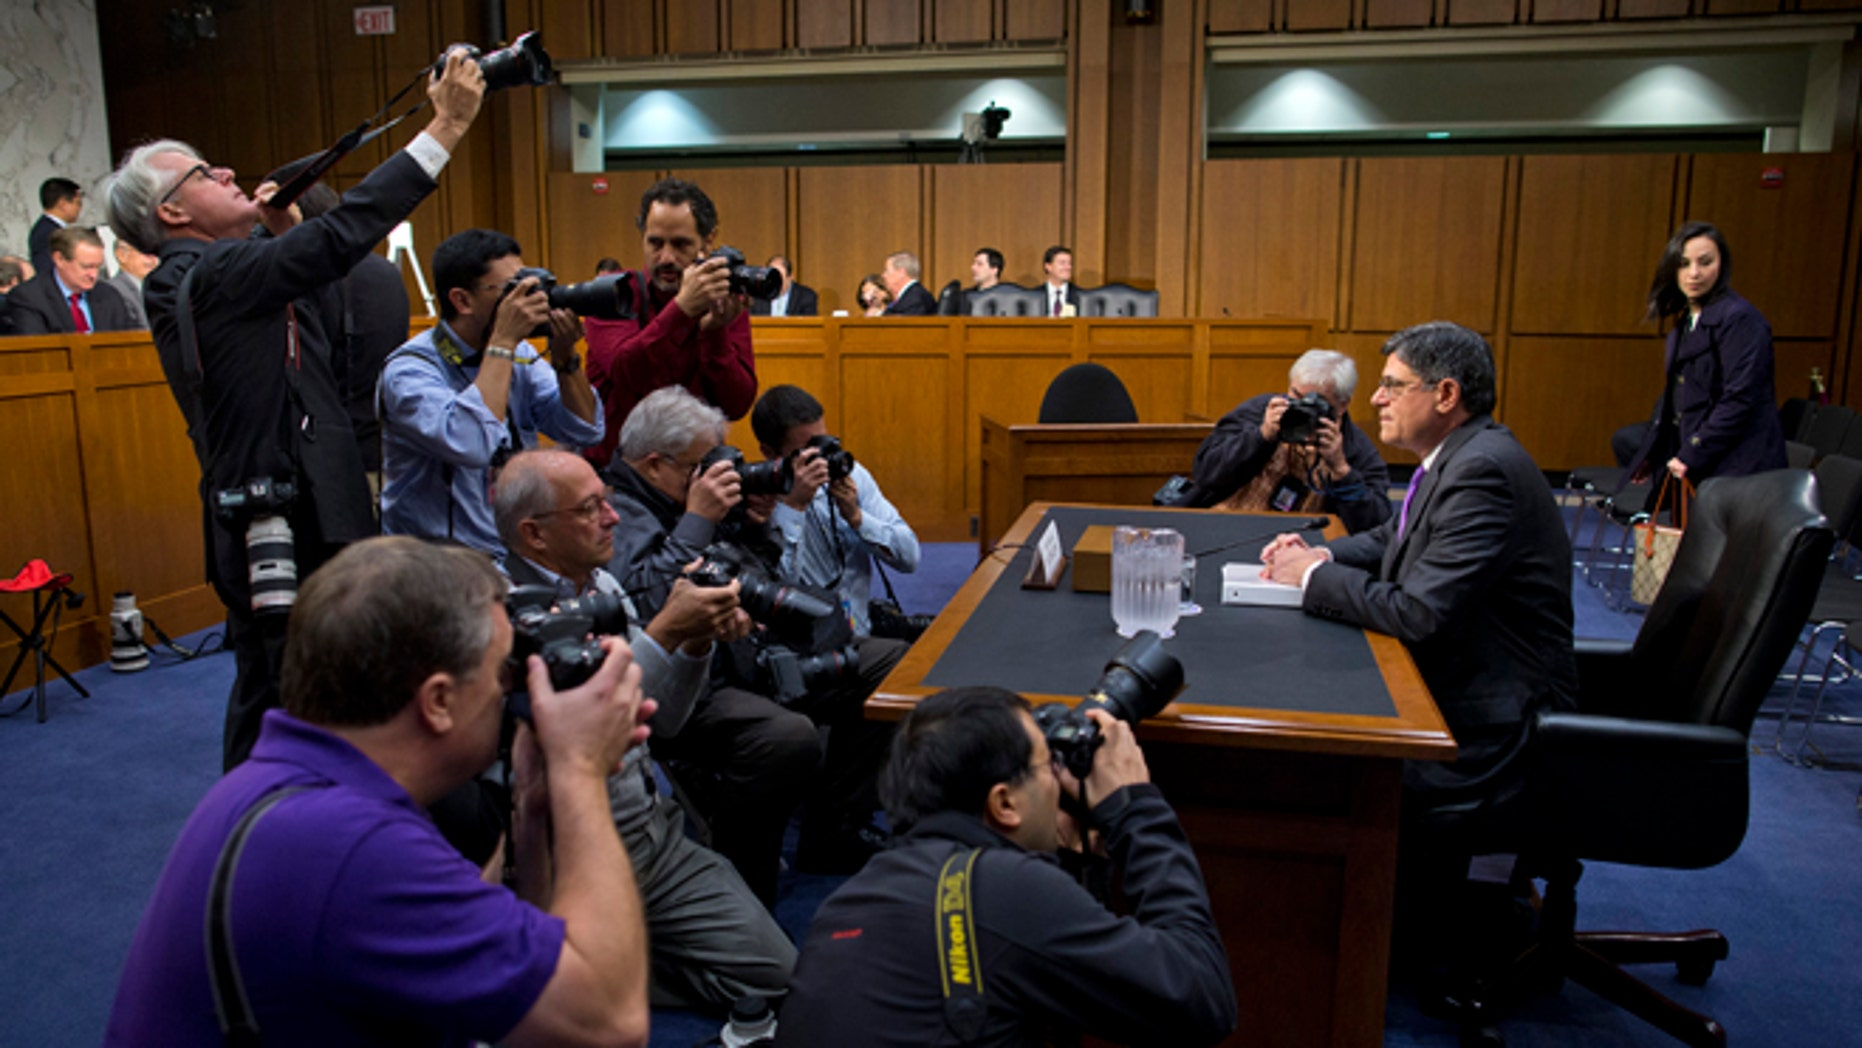 Oct. 10, 2013: Treasury Secretary Jacob Lew is surrounded by photographers prior to testifying on Capitol Hill in Washington.